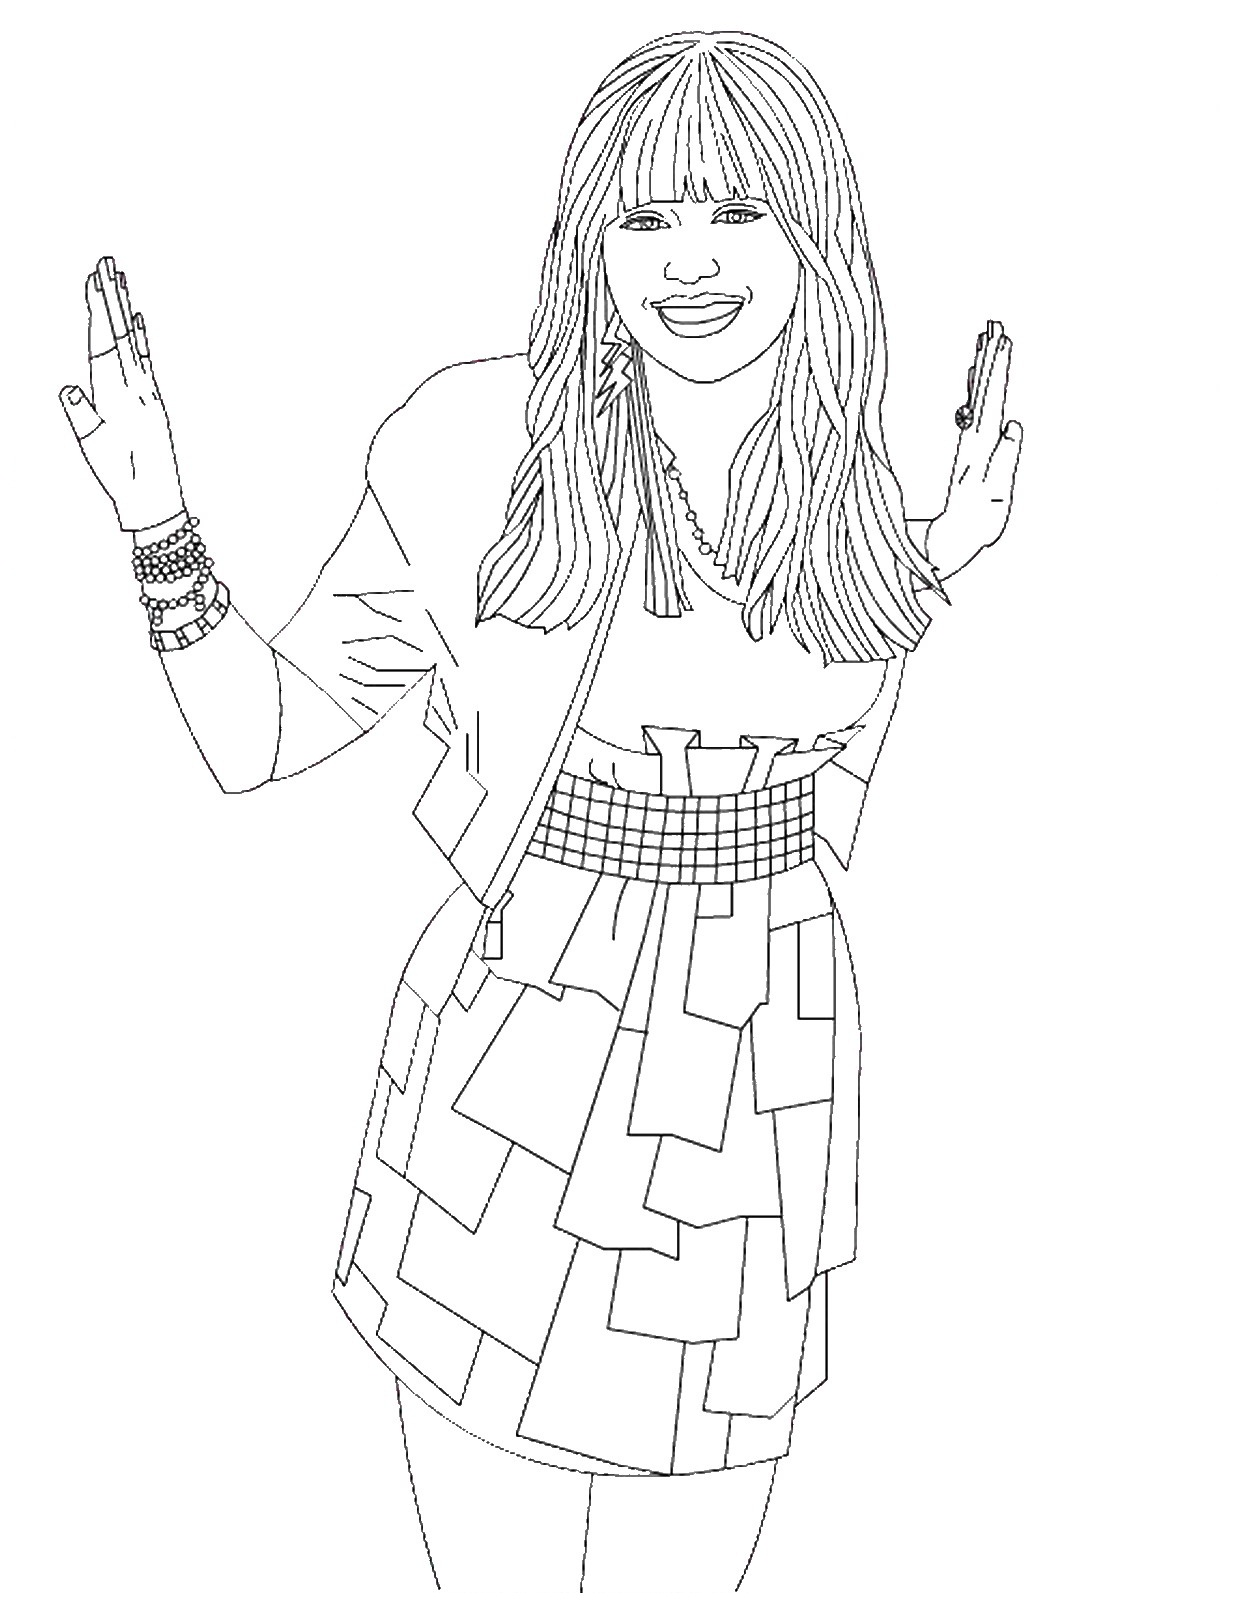 hannah montana online coloring pages - photo#20